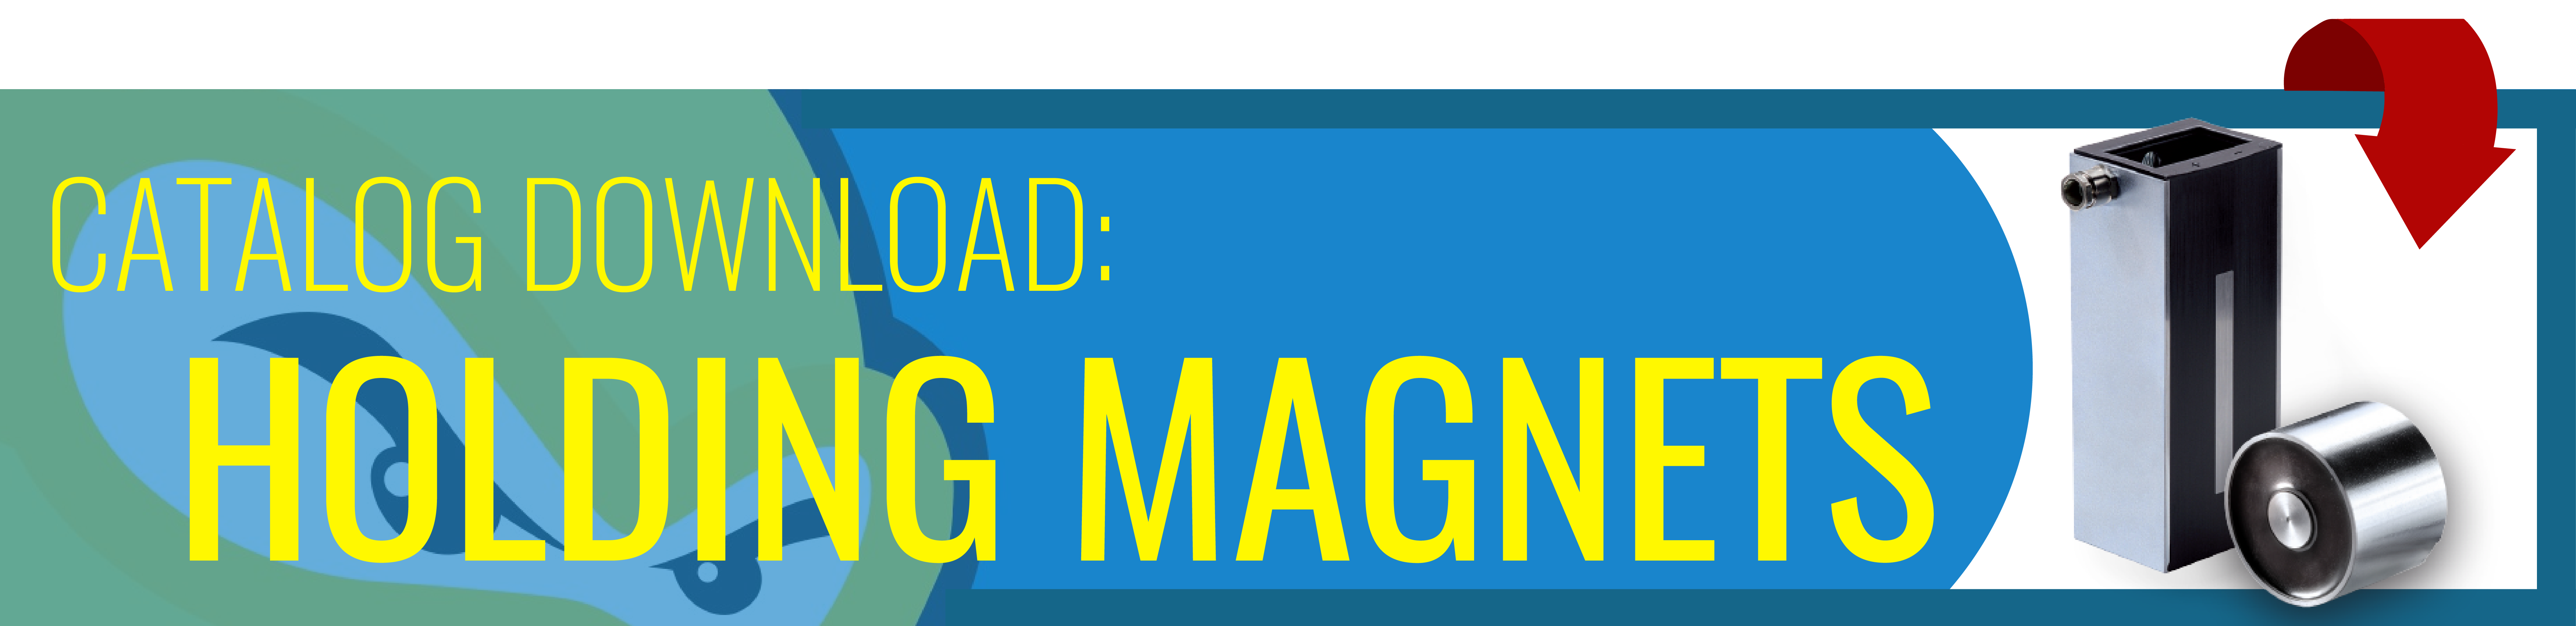 holding-magnets-download.png